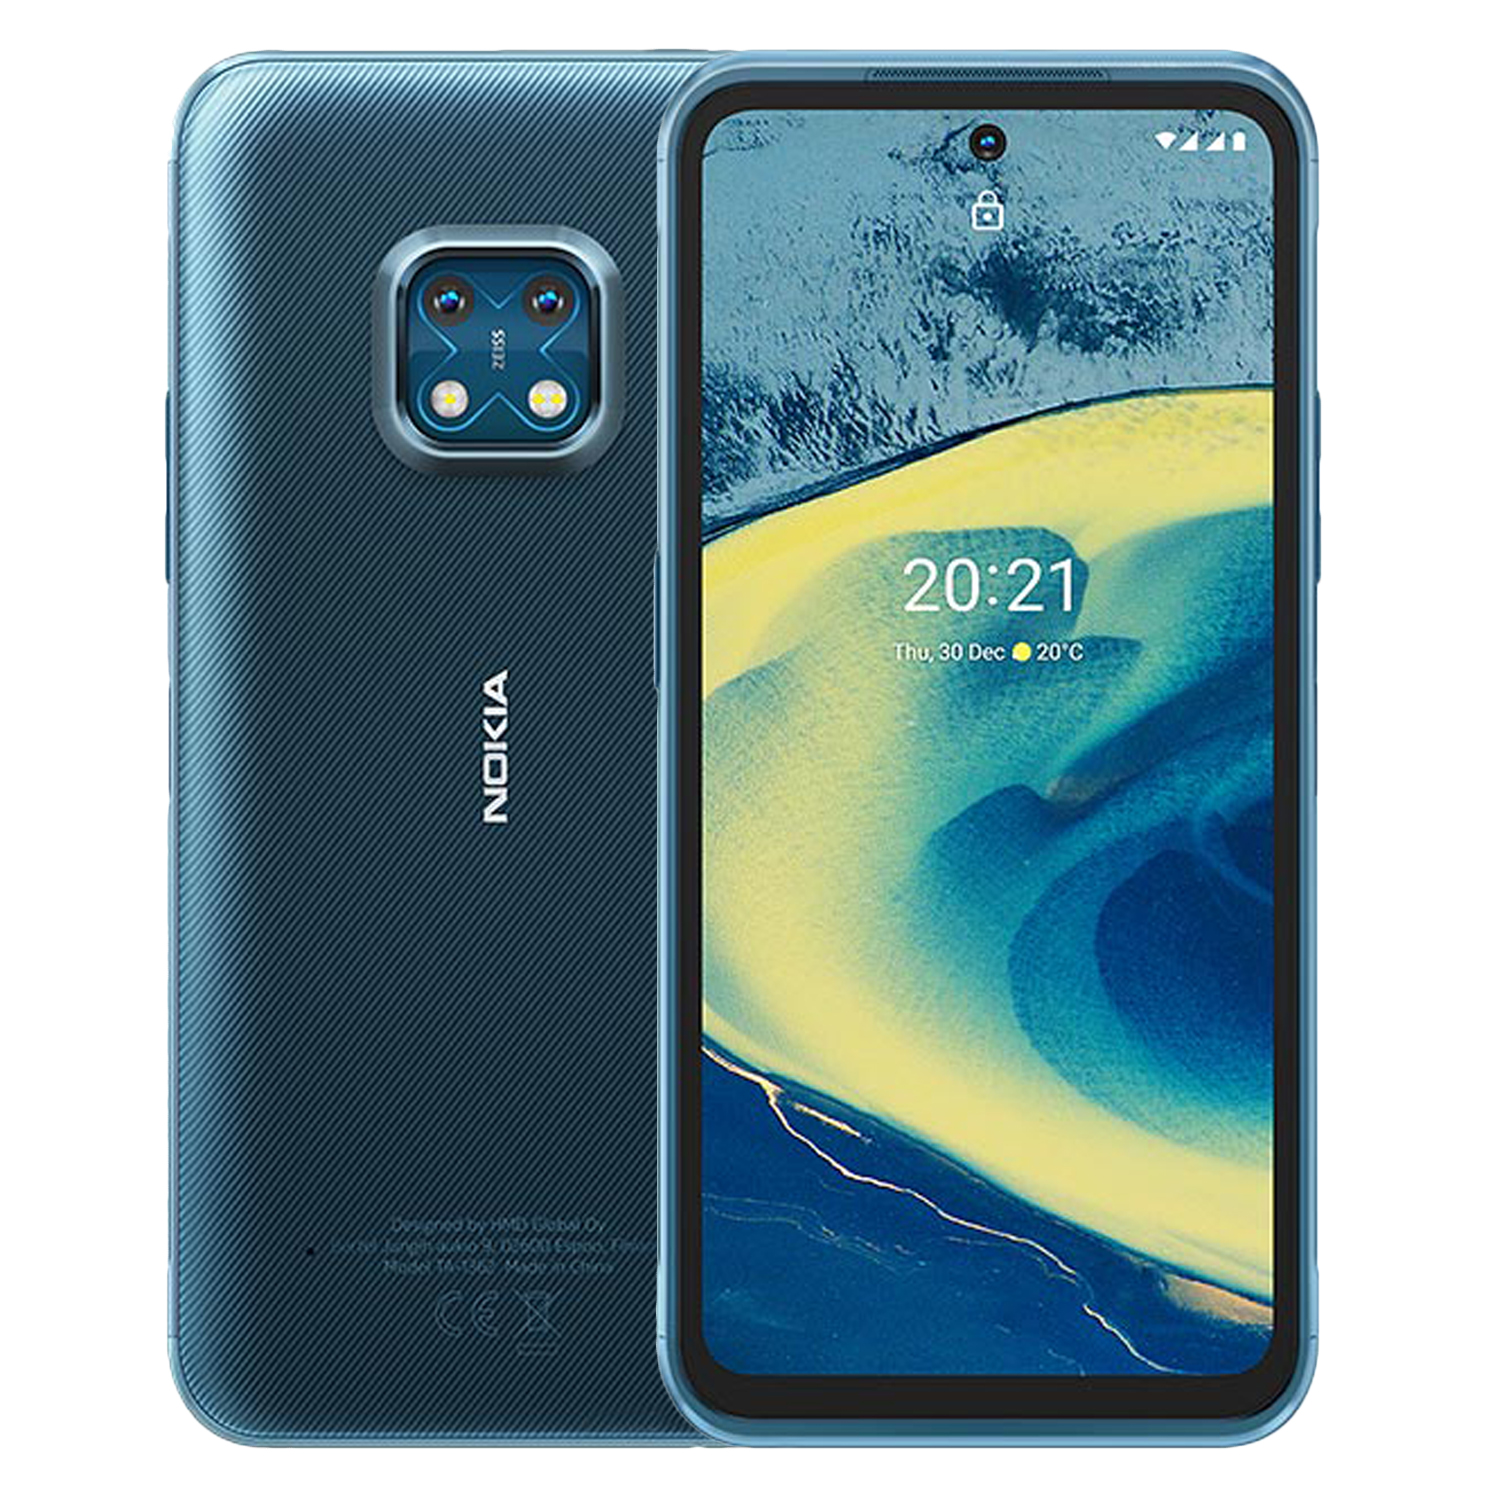 Nokia XR20 - Full Phone Specifications & Price - Gadgets Realm